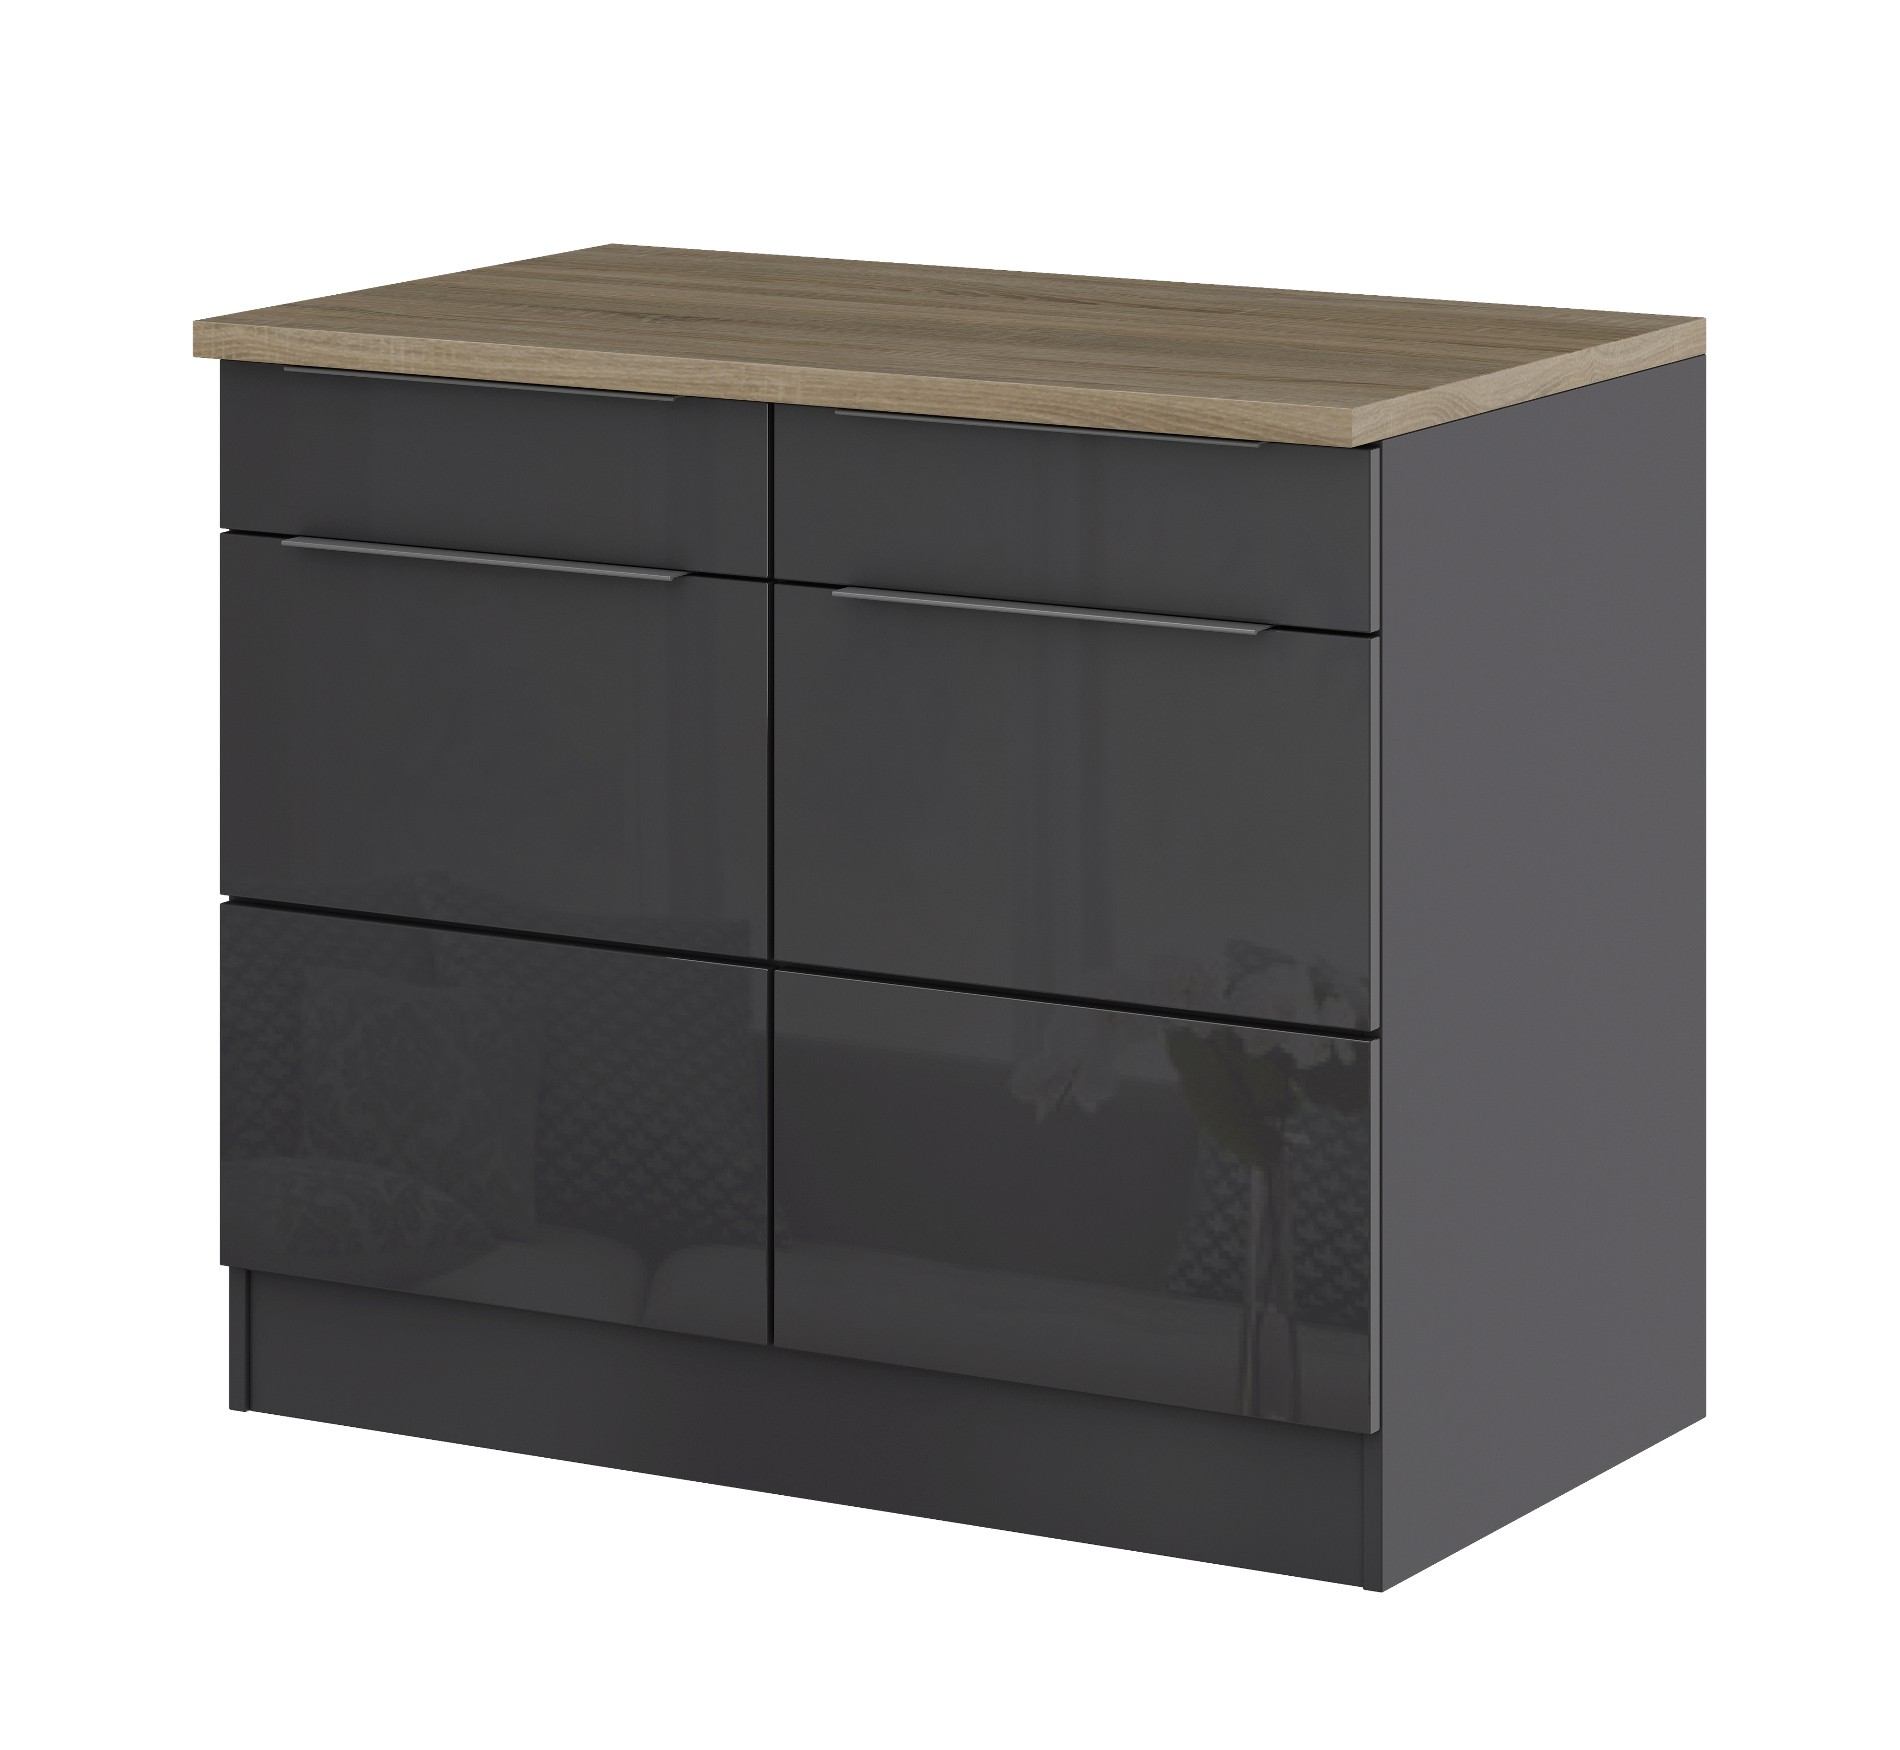 100 cm breit gnstig wei geprgt m lang cm breit with 100 cm breit gnstig good holzregal cm. Black Bedroom Furniture Sets. Home Design Ideas